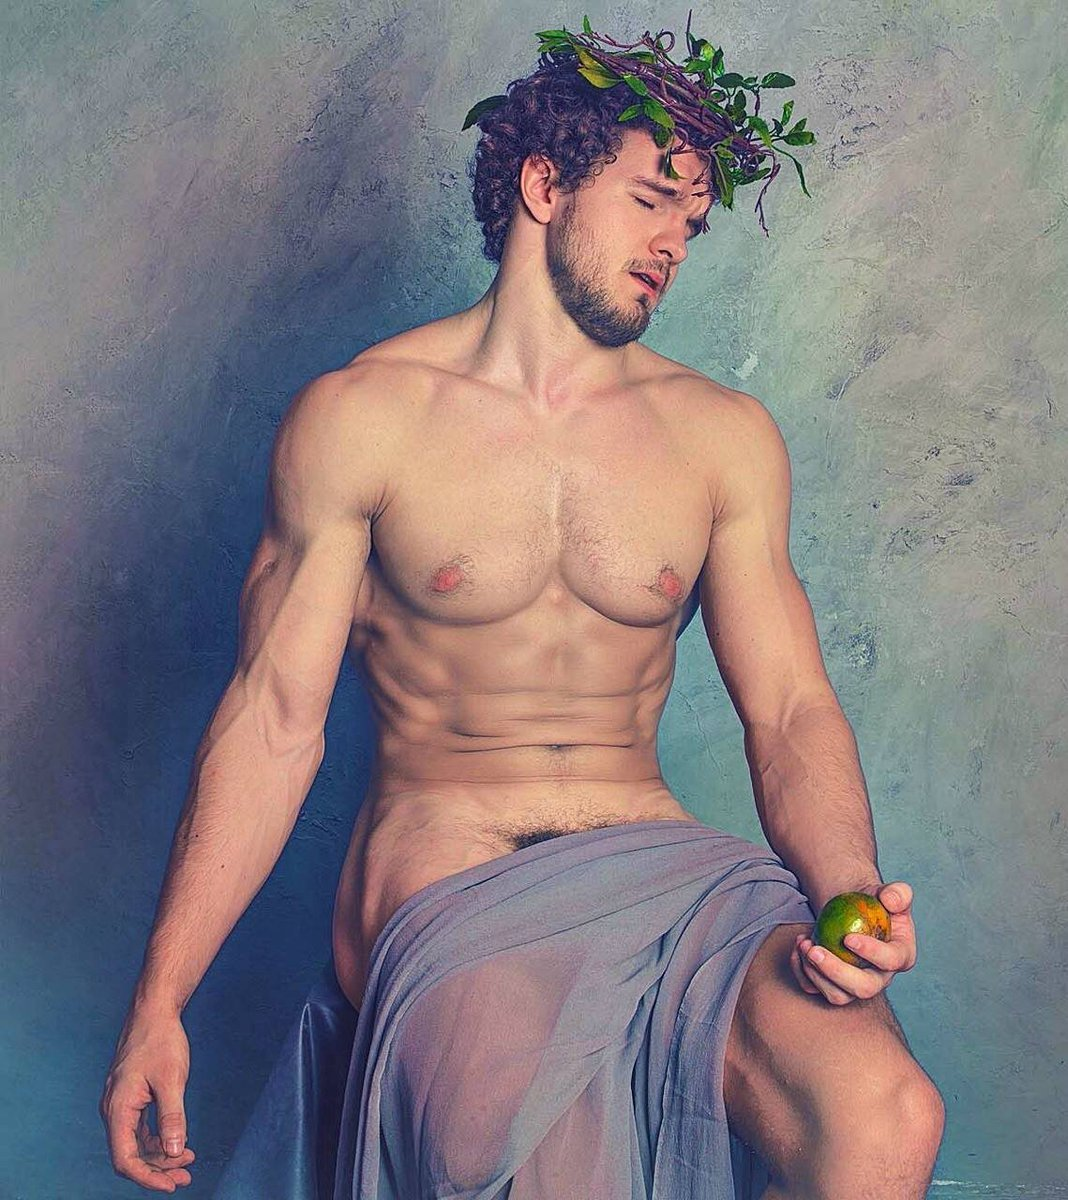 What happens when men get naked for art